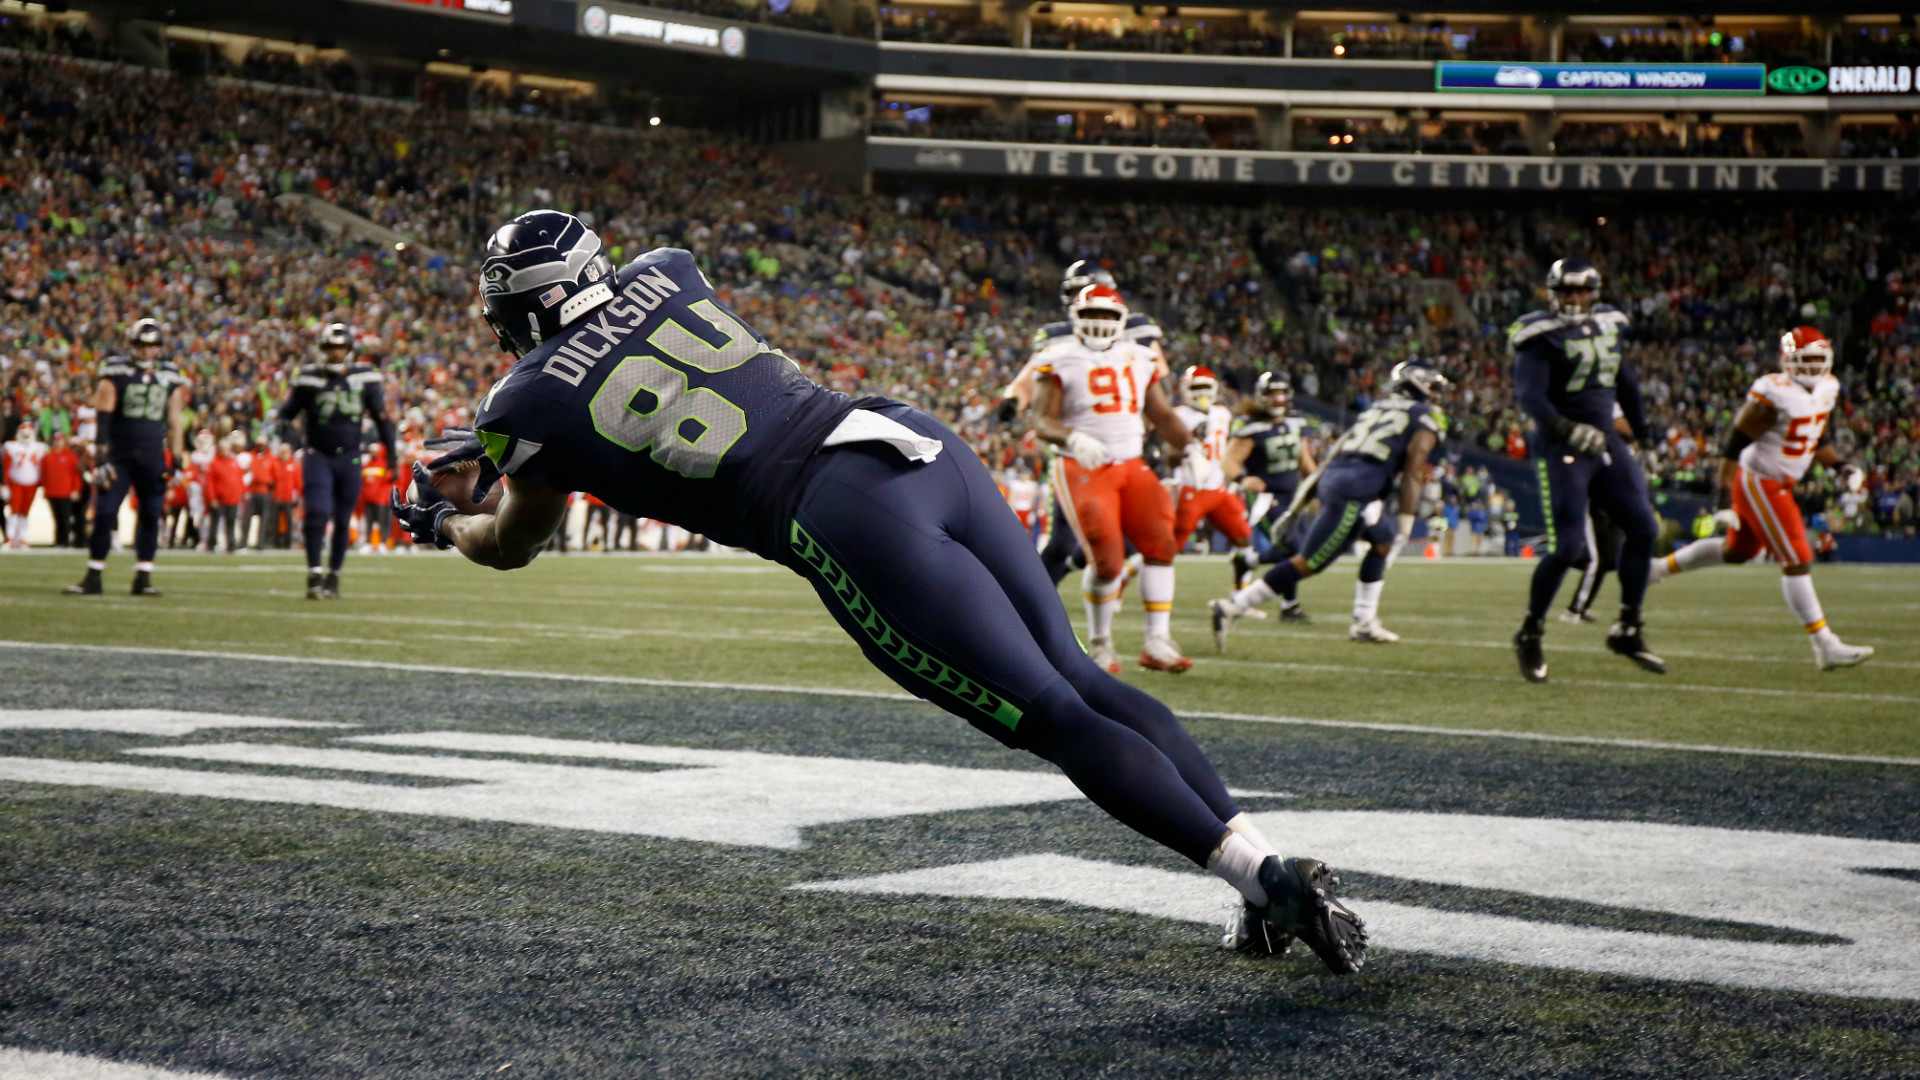 Chiefs Vs. Seahawks Results: Score, Highlights From